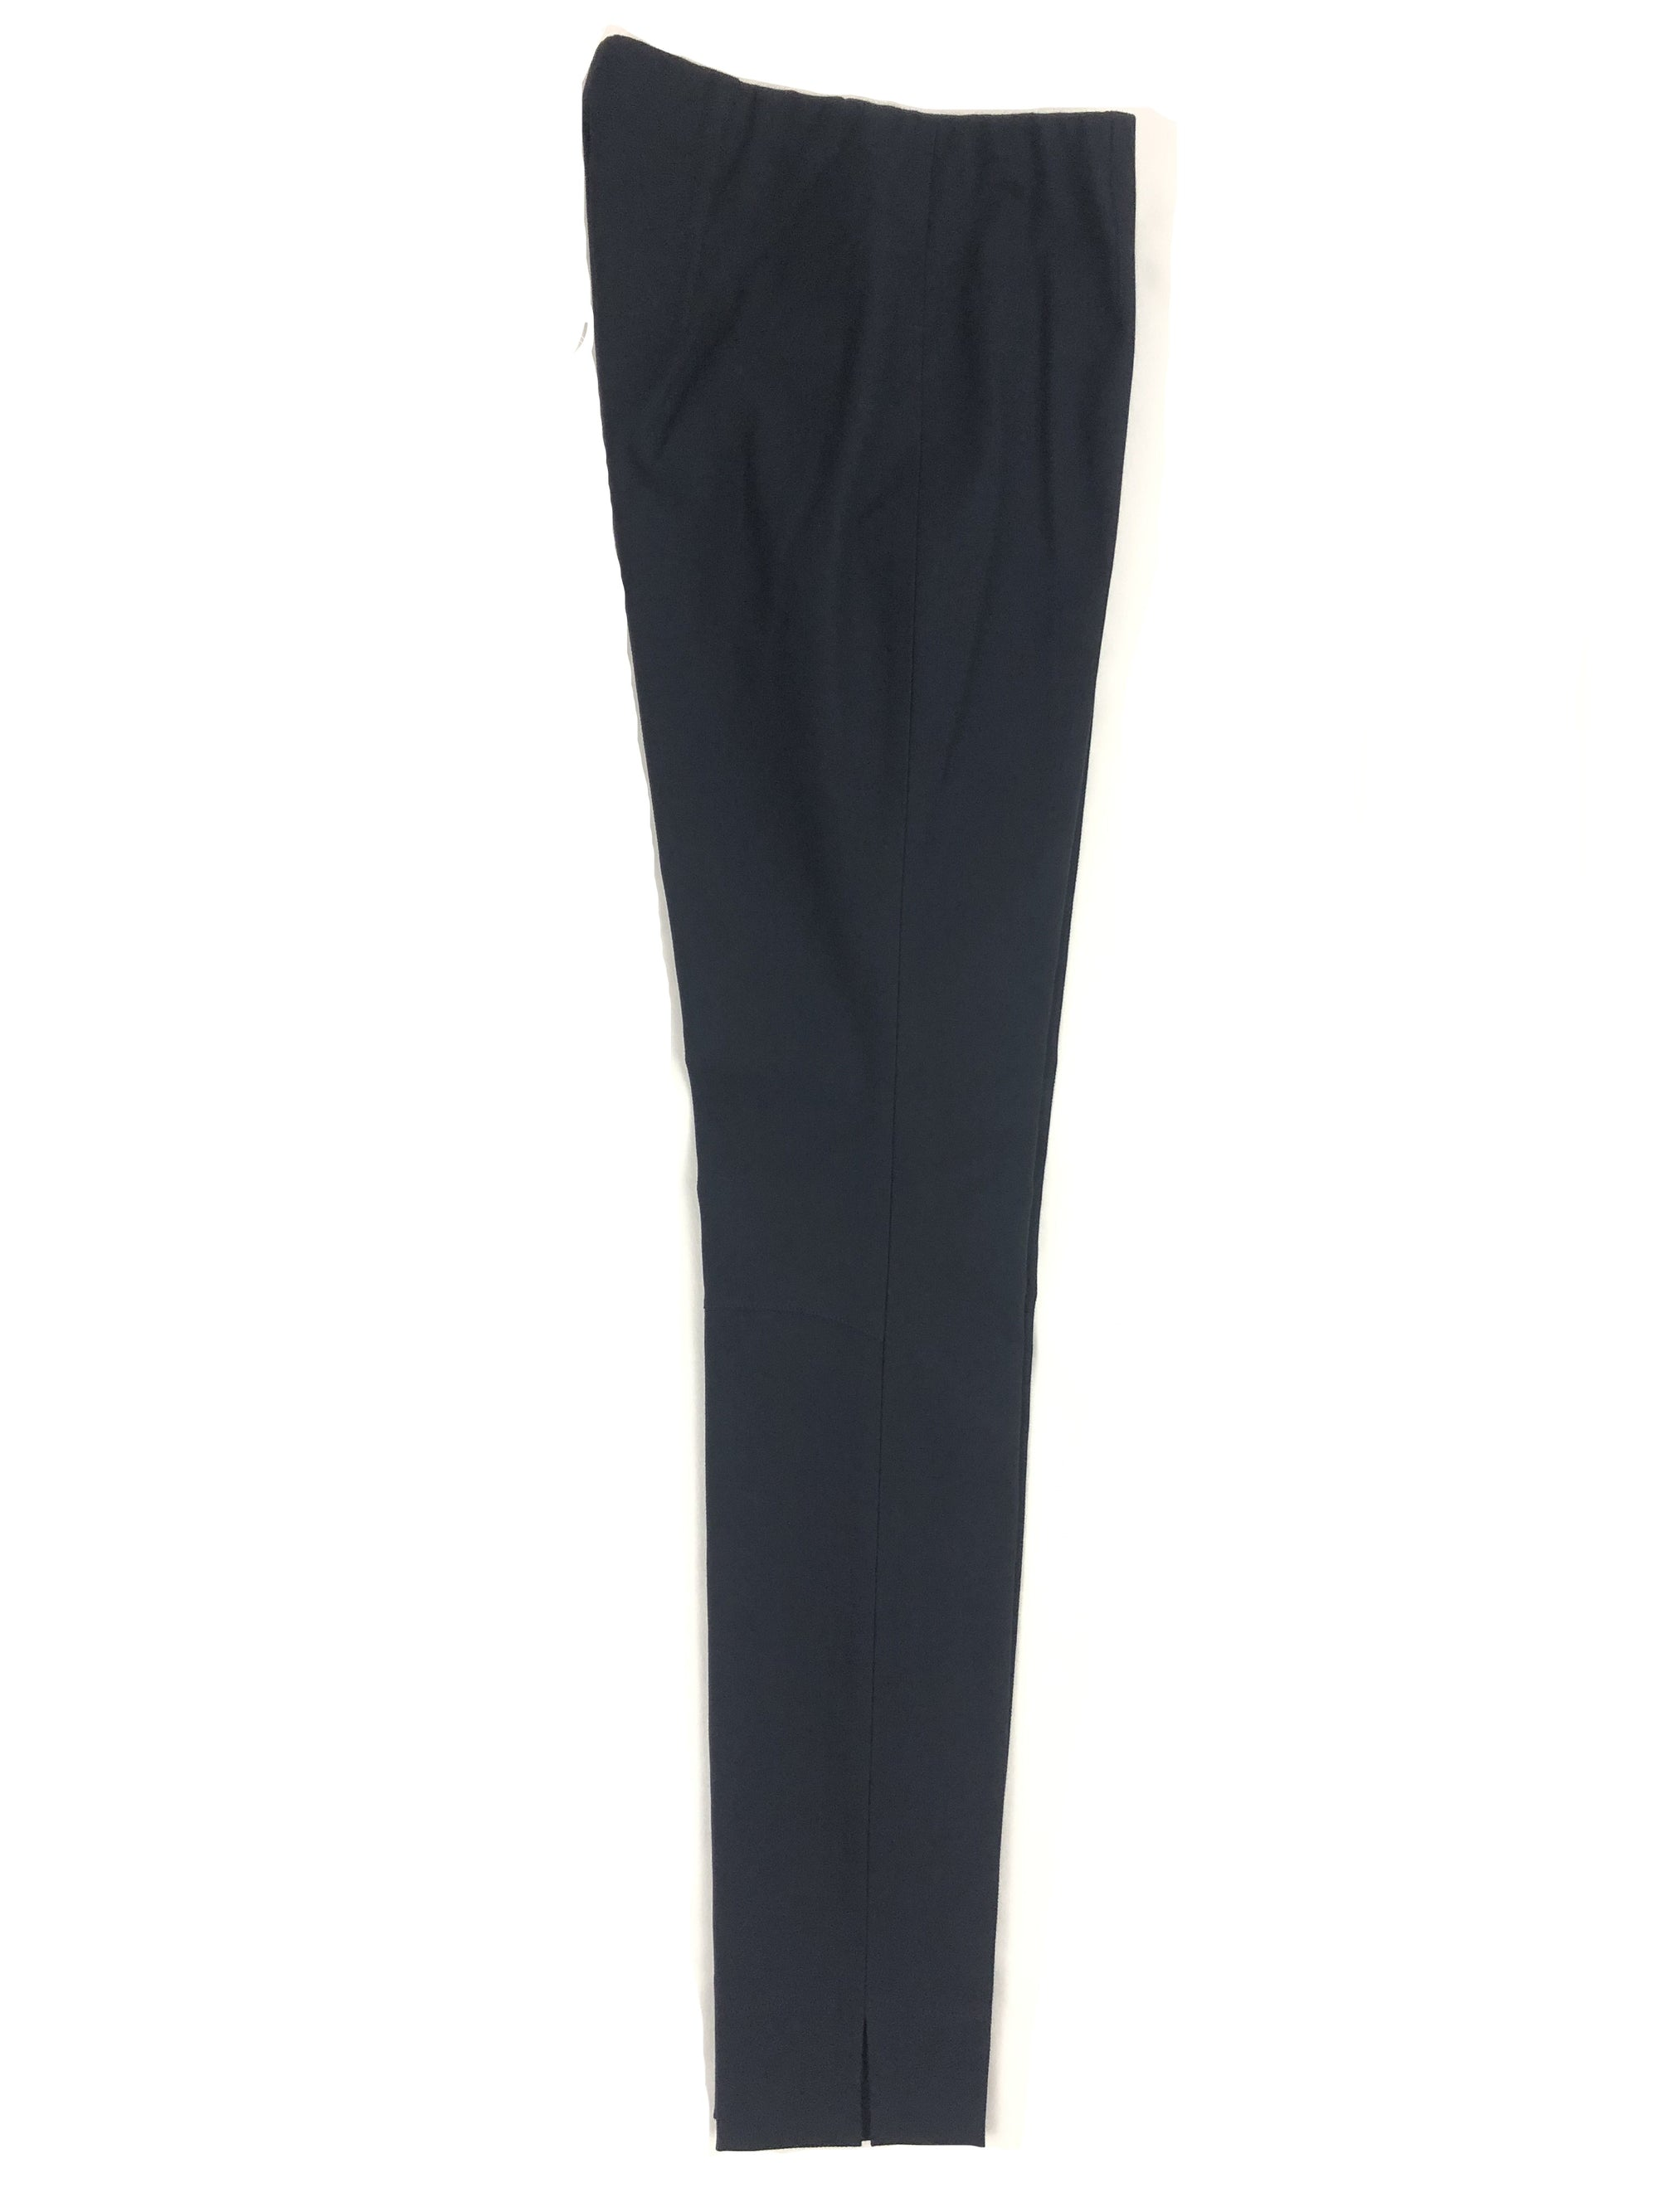 VIA MASINI 80 PIQUE WOMEN'S PANT - DARK NAVY